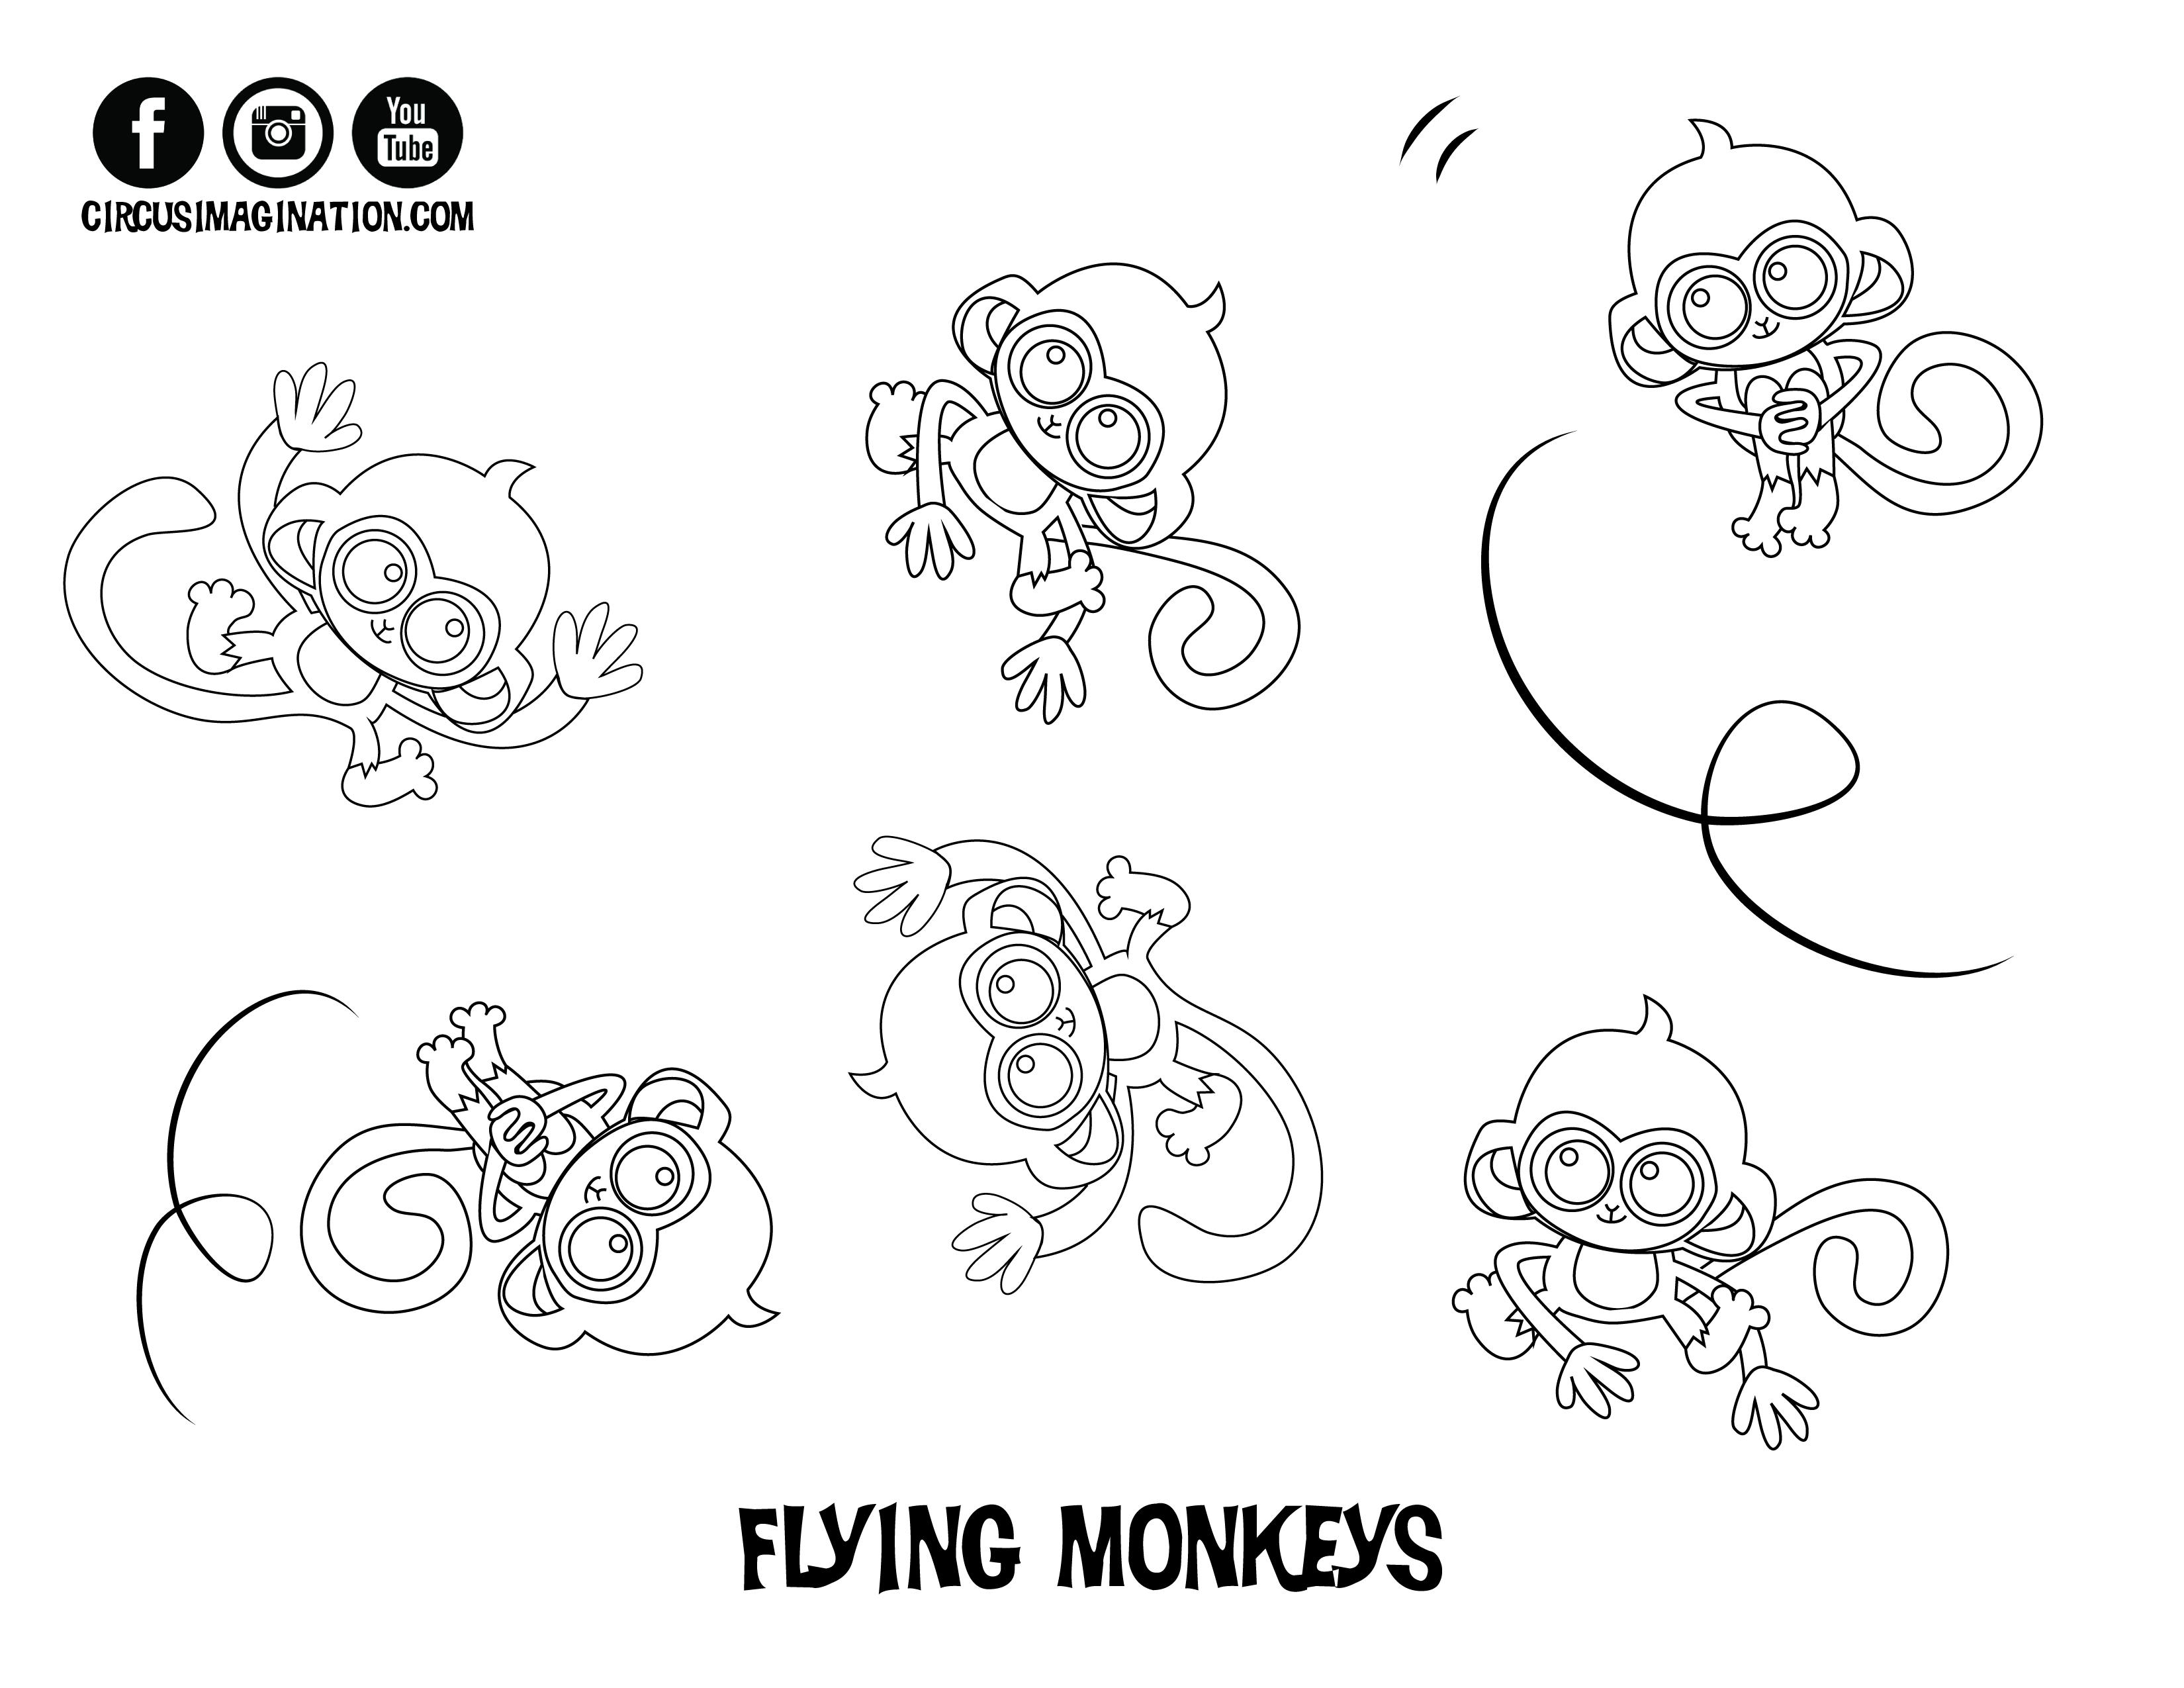 play circus imagination play circus imagination five little monkeys coloring page - 5 Little Monkeys Coloring Page